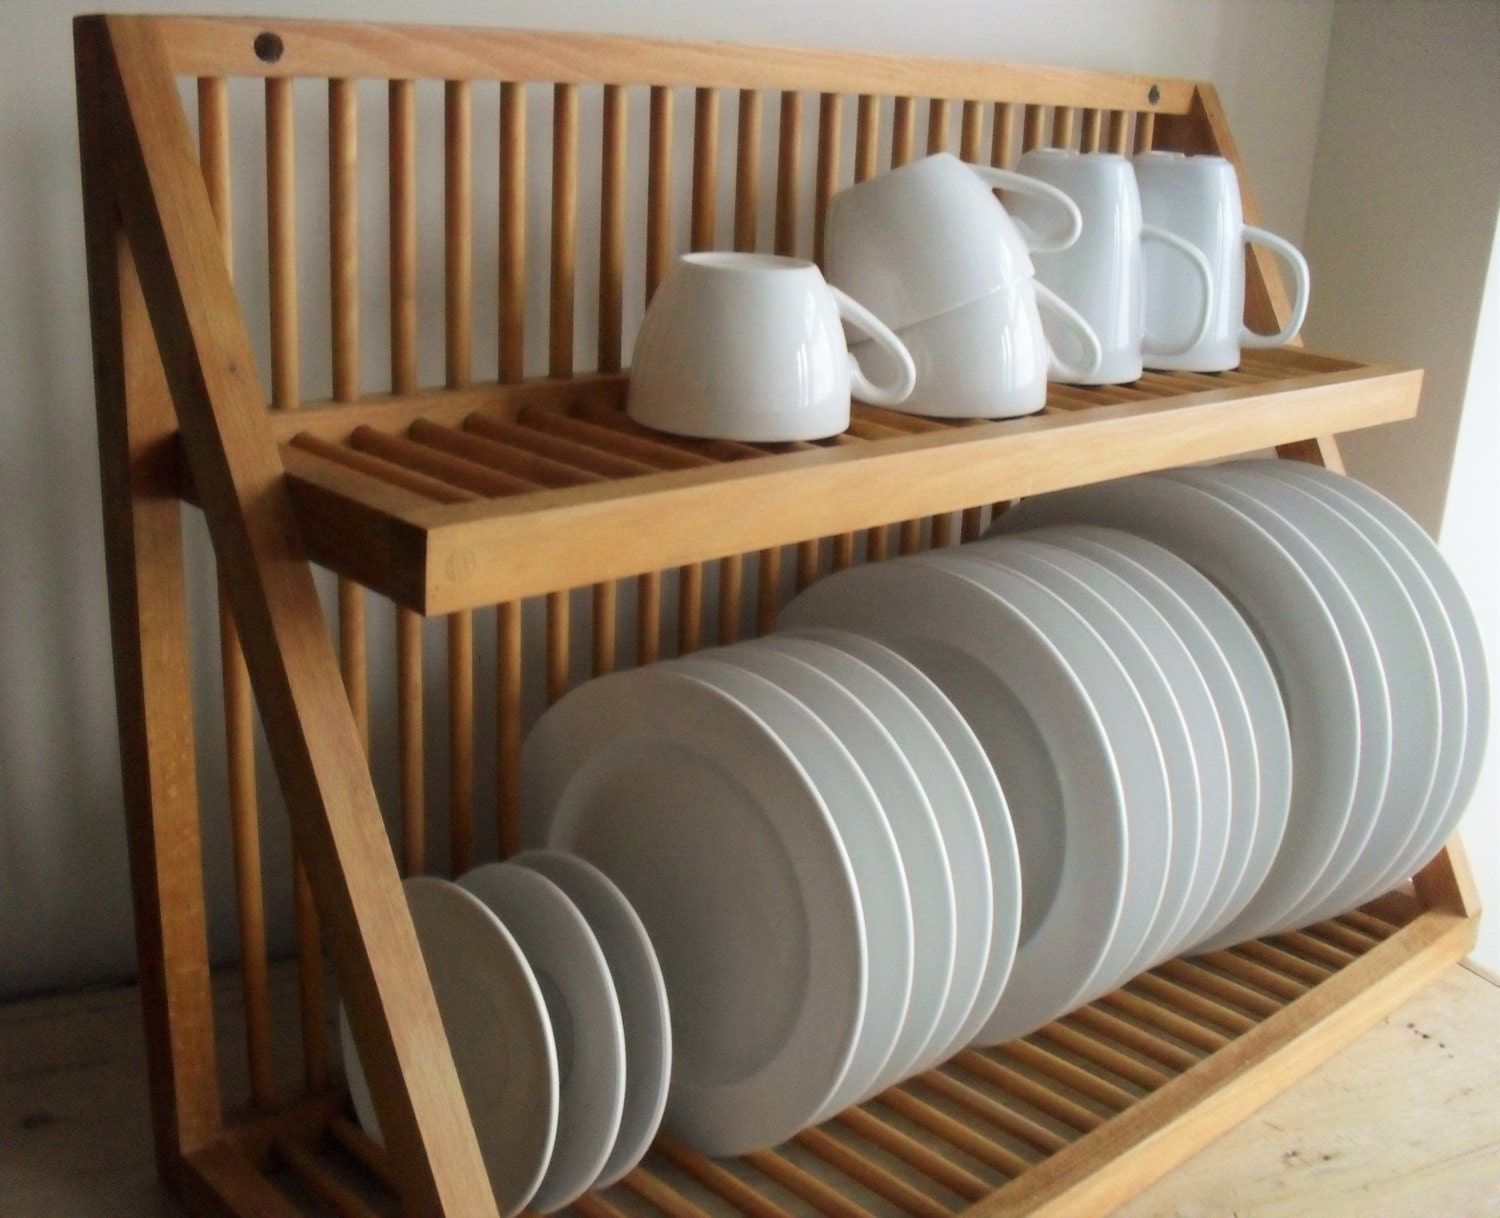 Wall mounted plate racks for kitchens - Like This Item